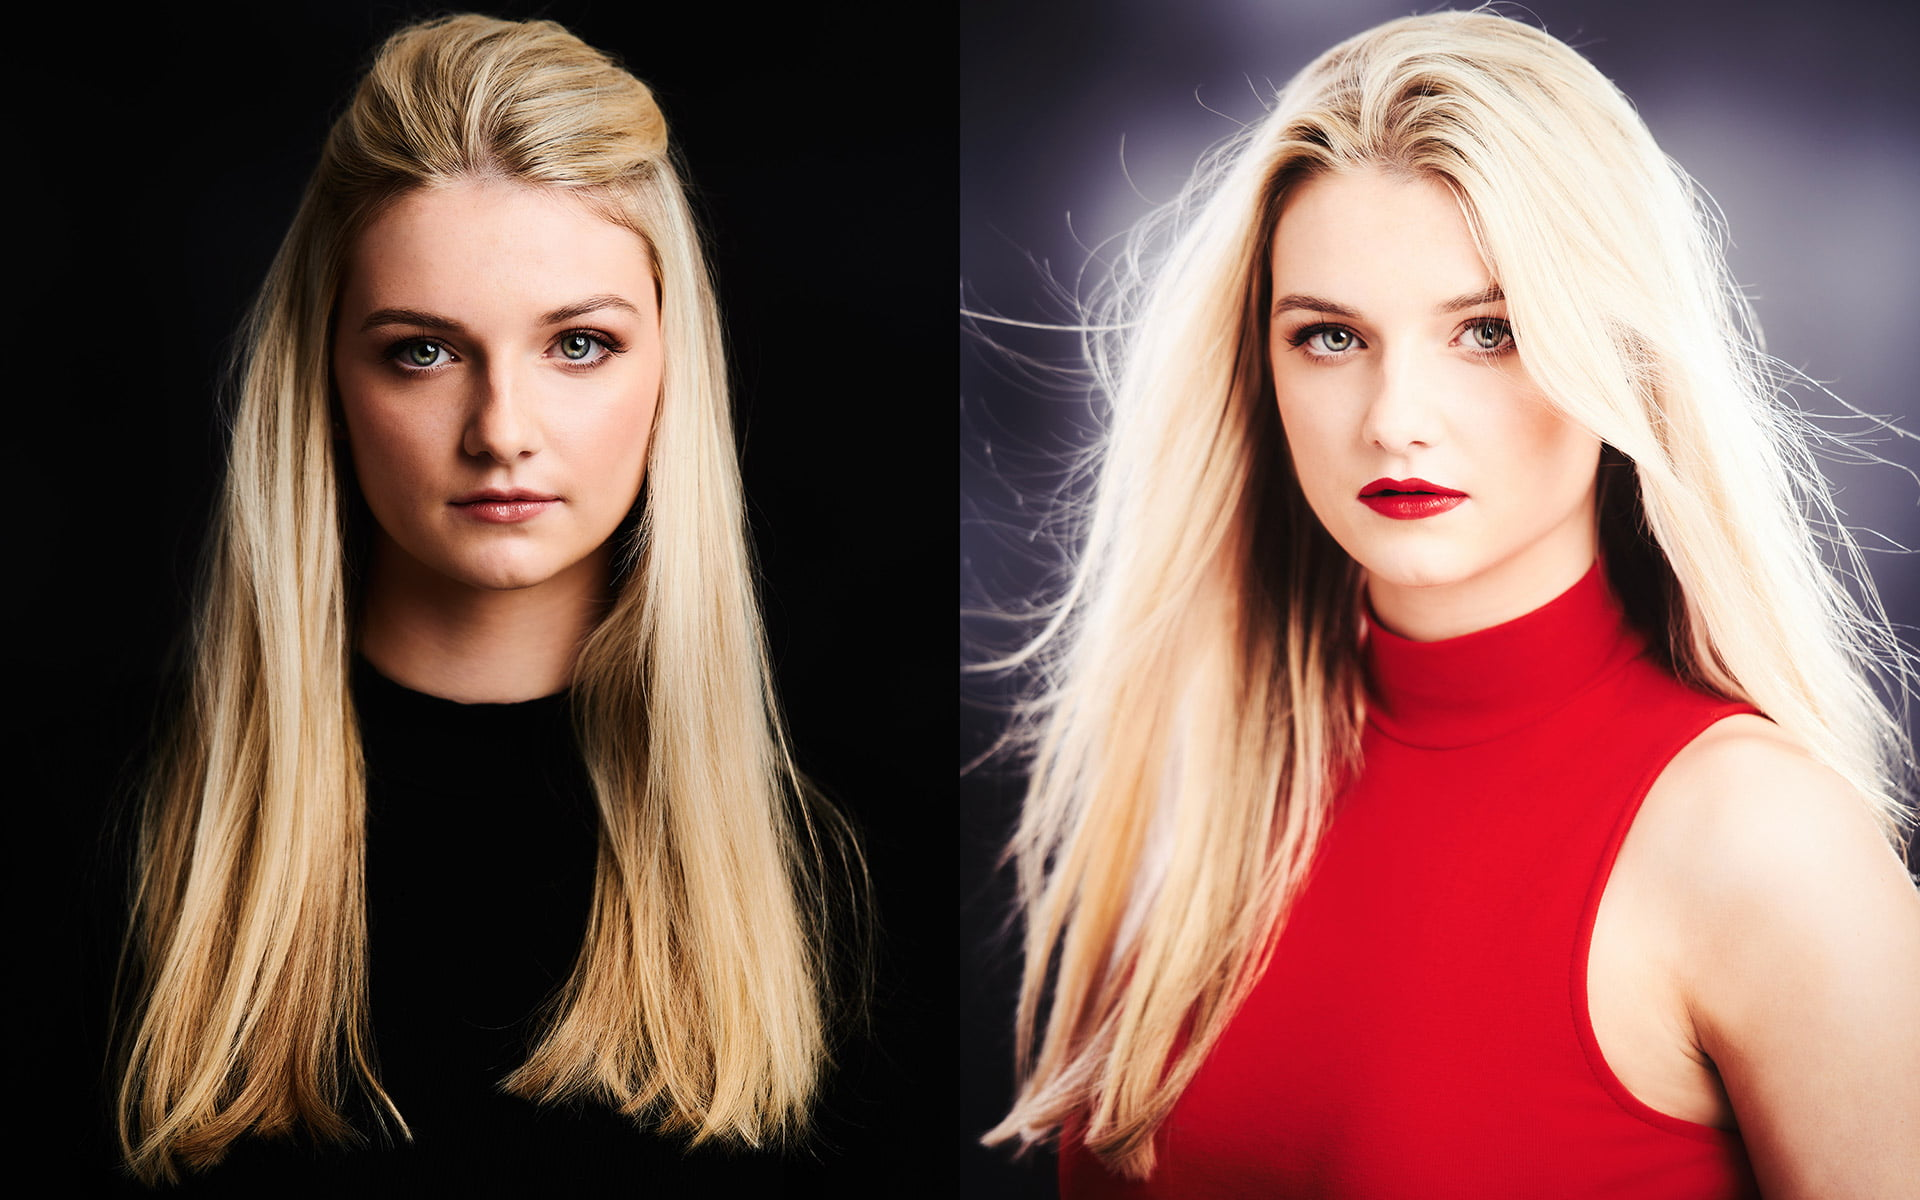 laines_dancer_headshots_photographer